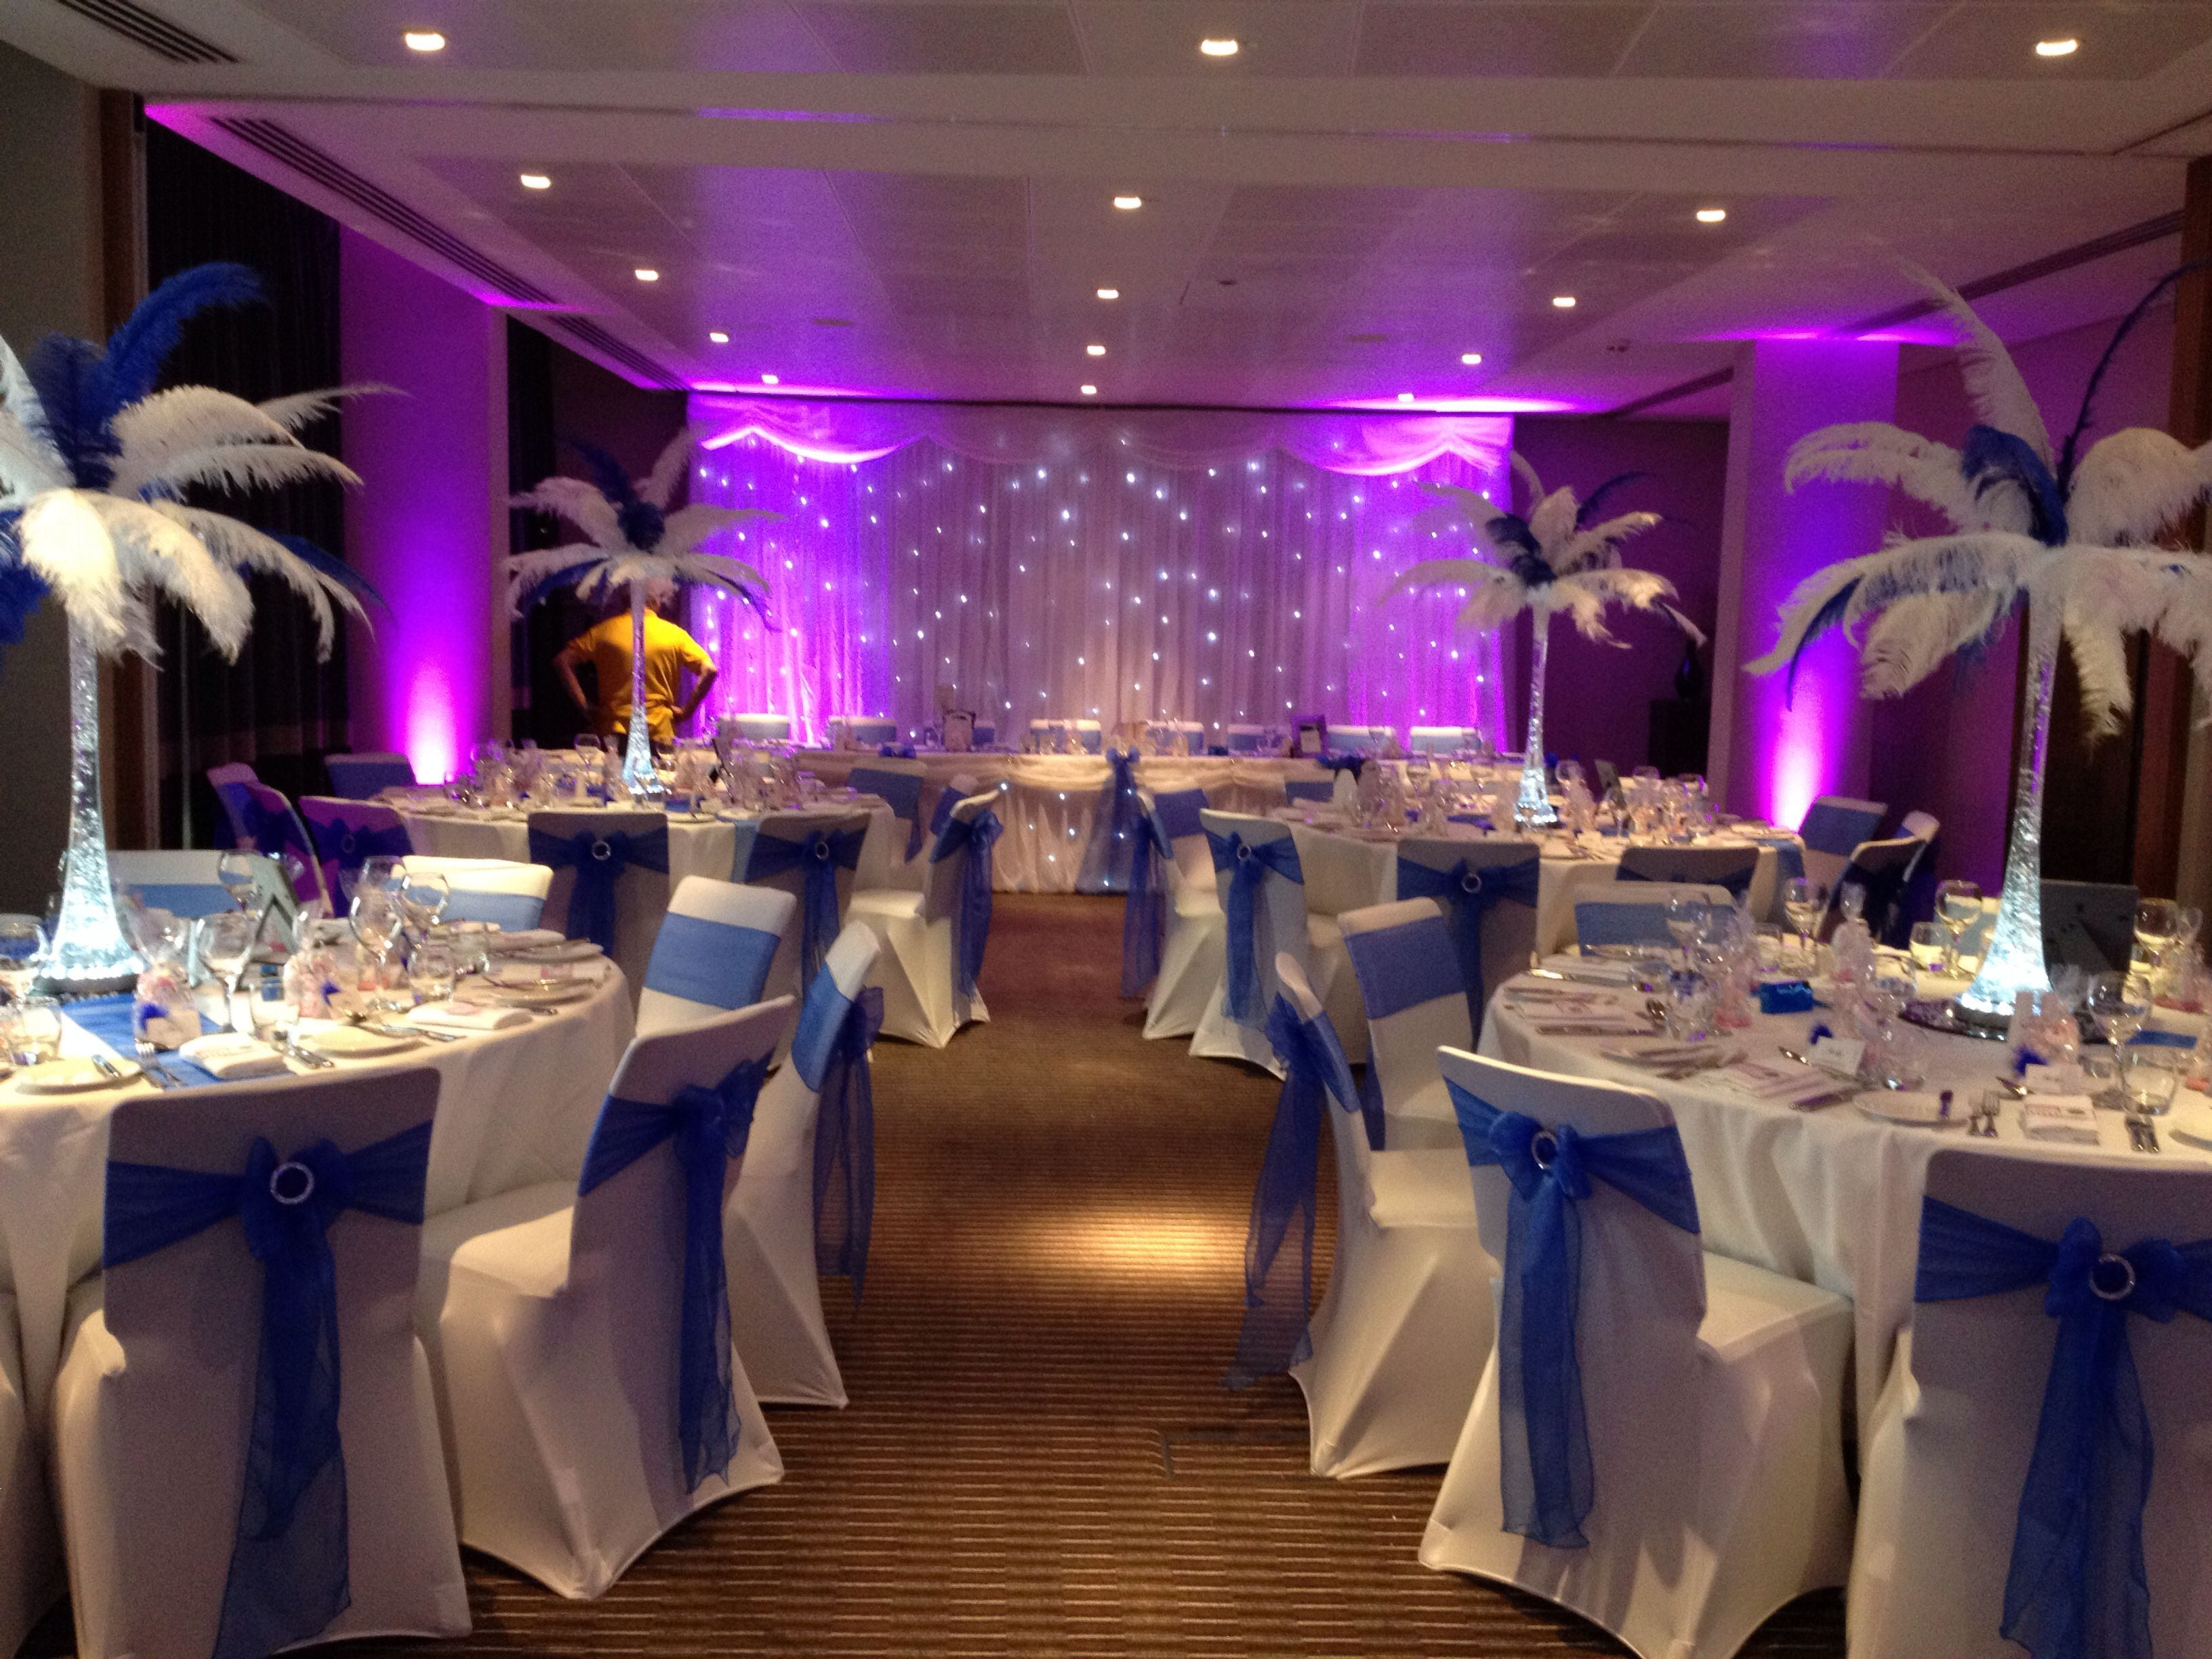 Wedding venue decoration images  The Aviator Hotel  Events For U Specialists in event dressing and